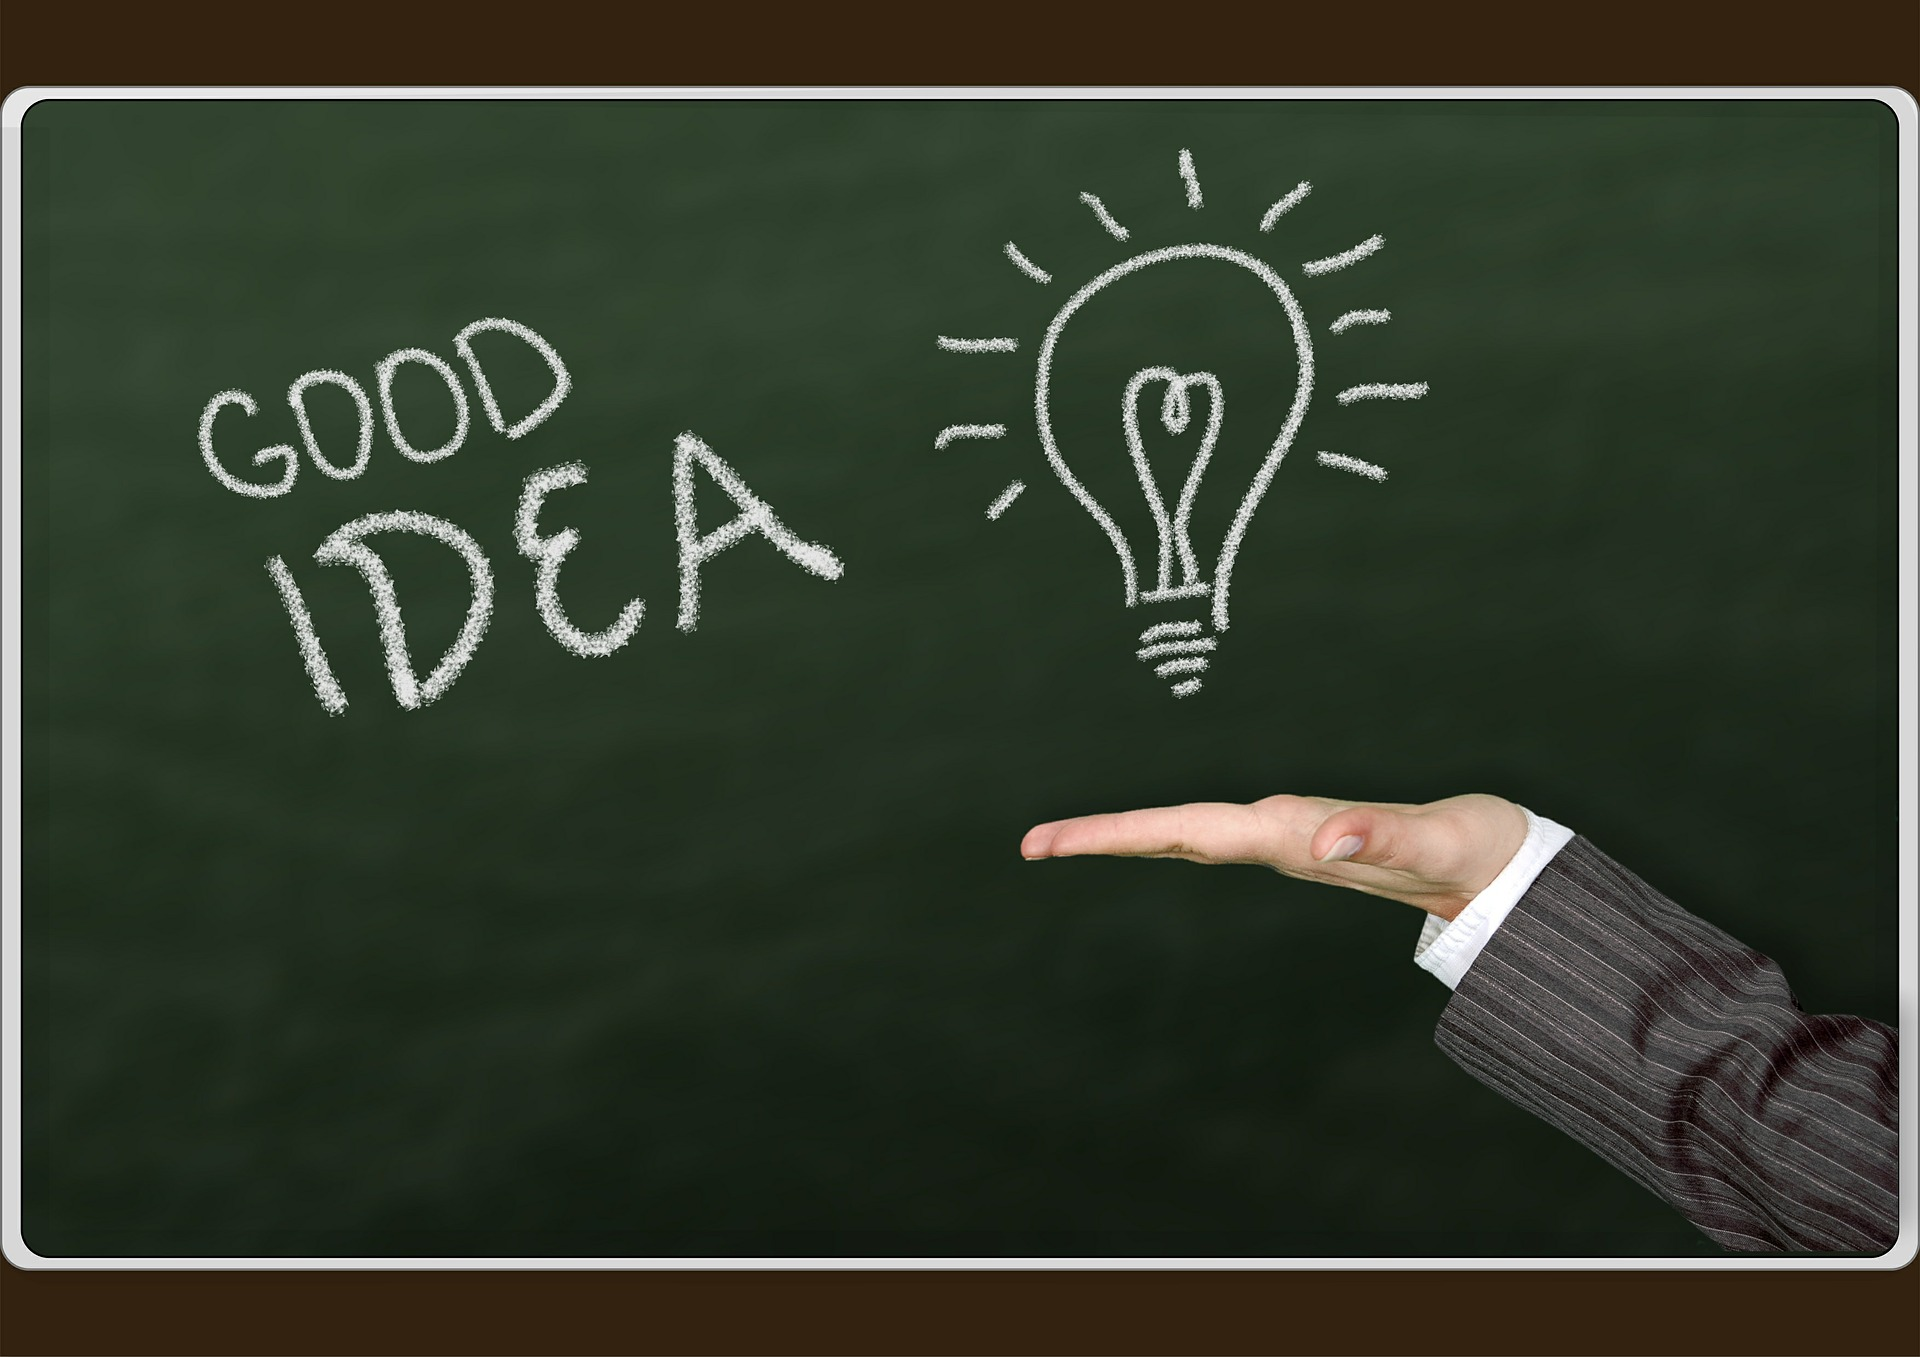 Serve your customer well, improve and innovate